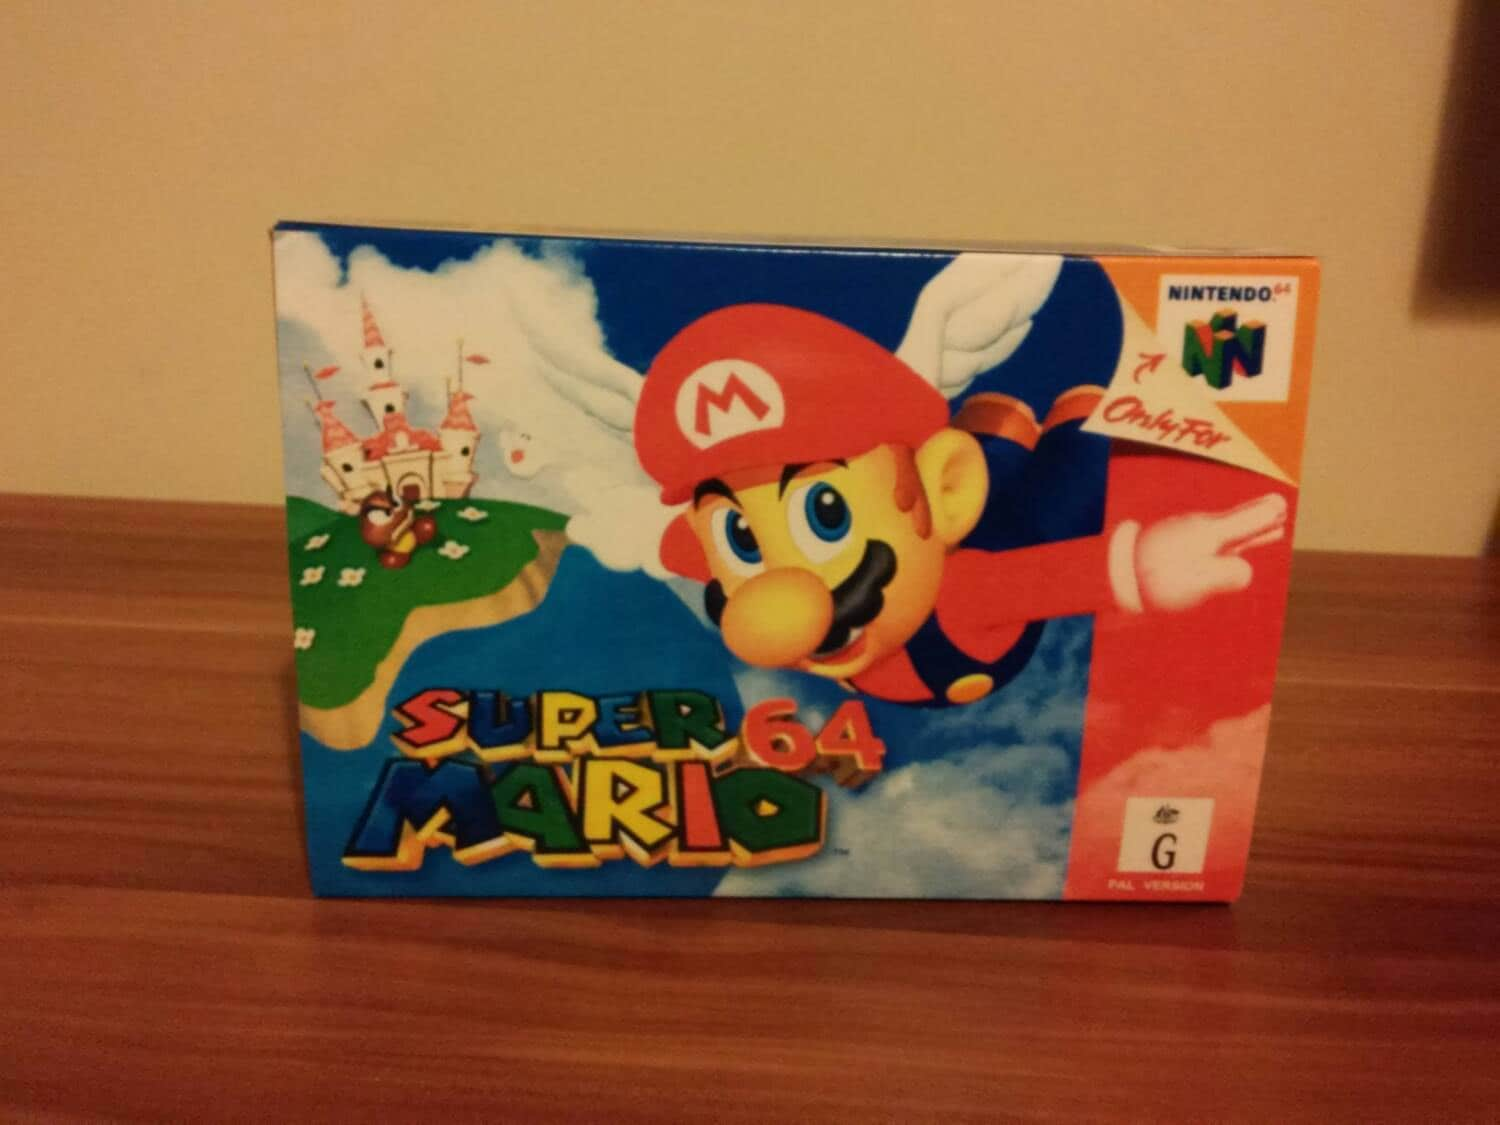 N64 Super Mario 64  Australian Repro Box and Insert NO Game Included